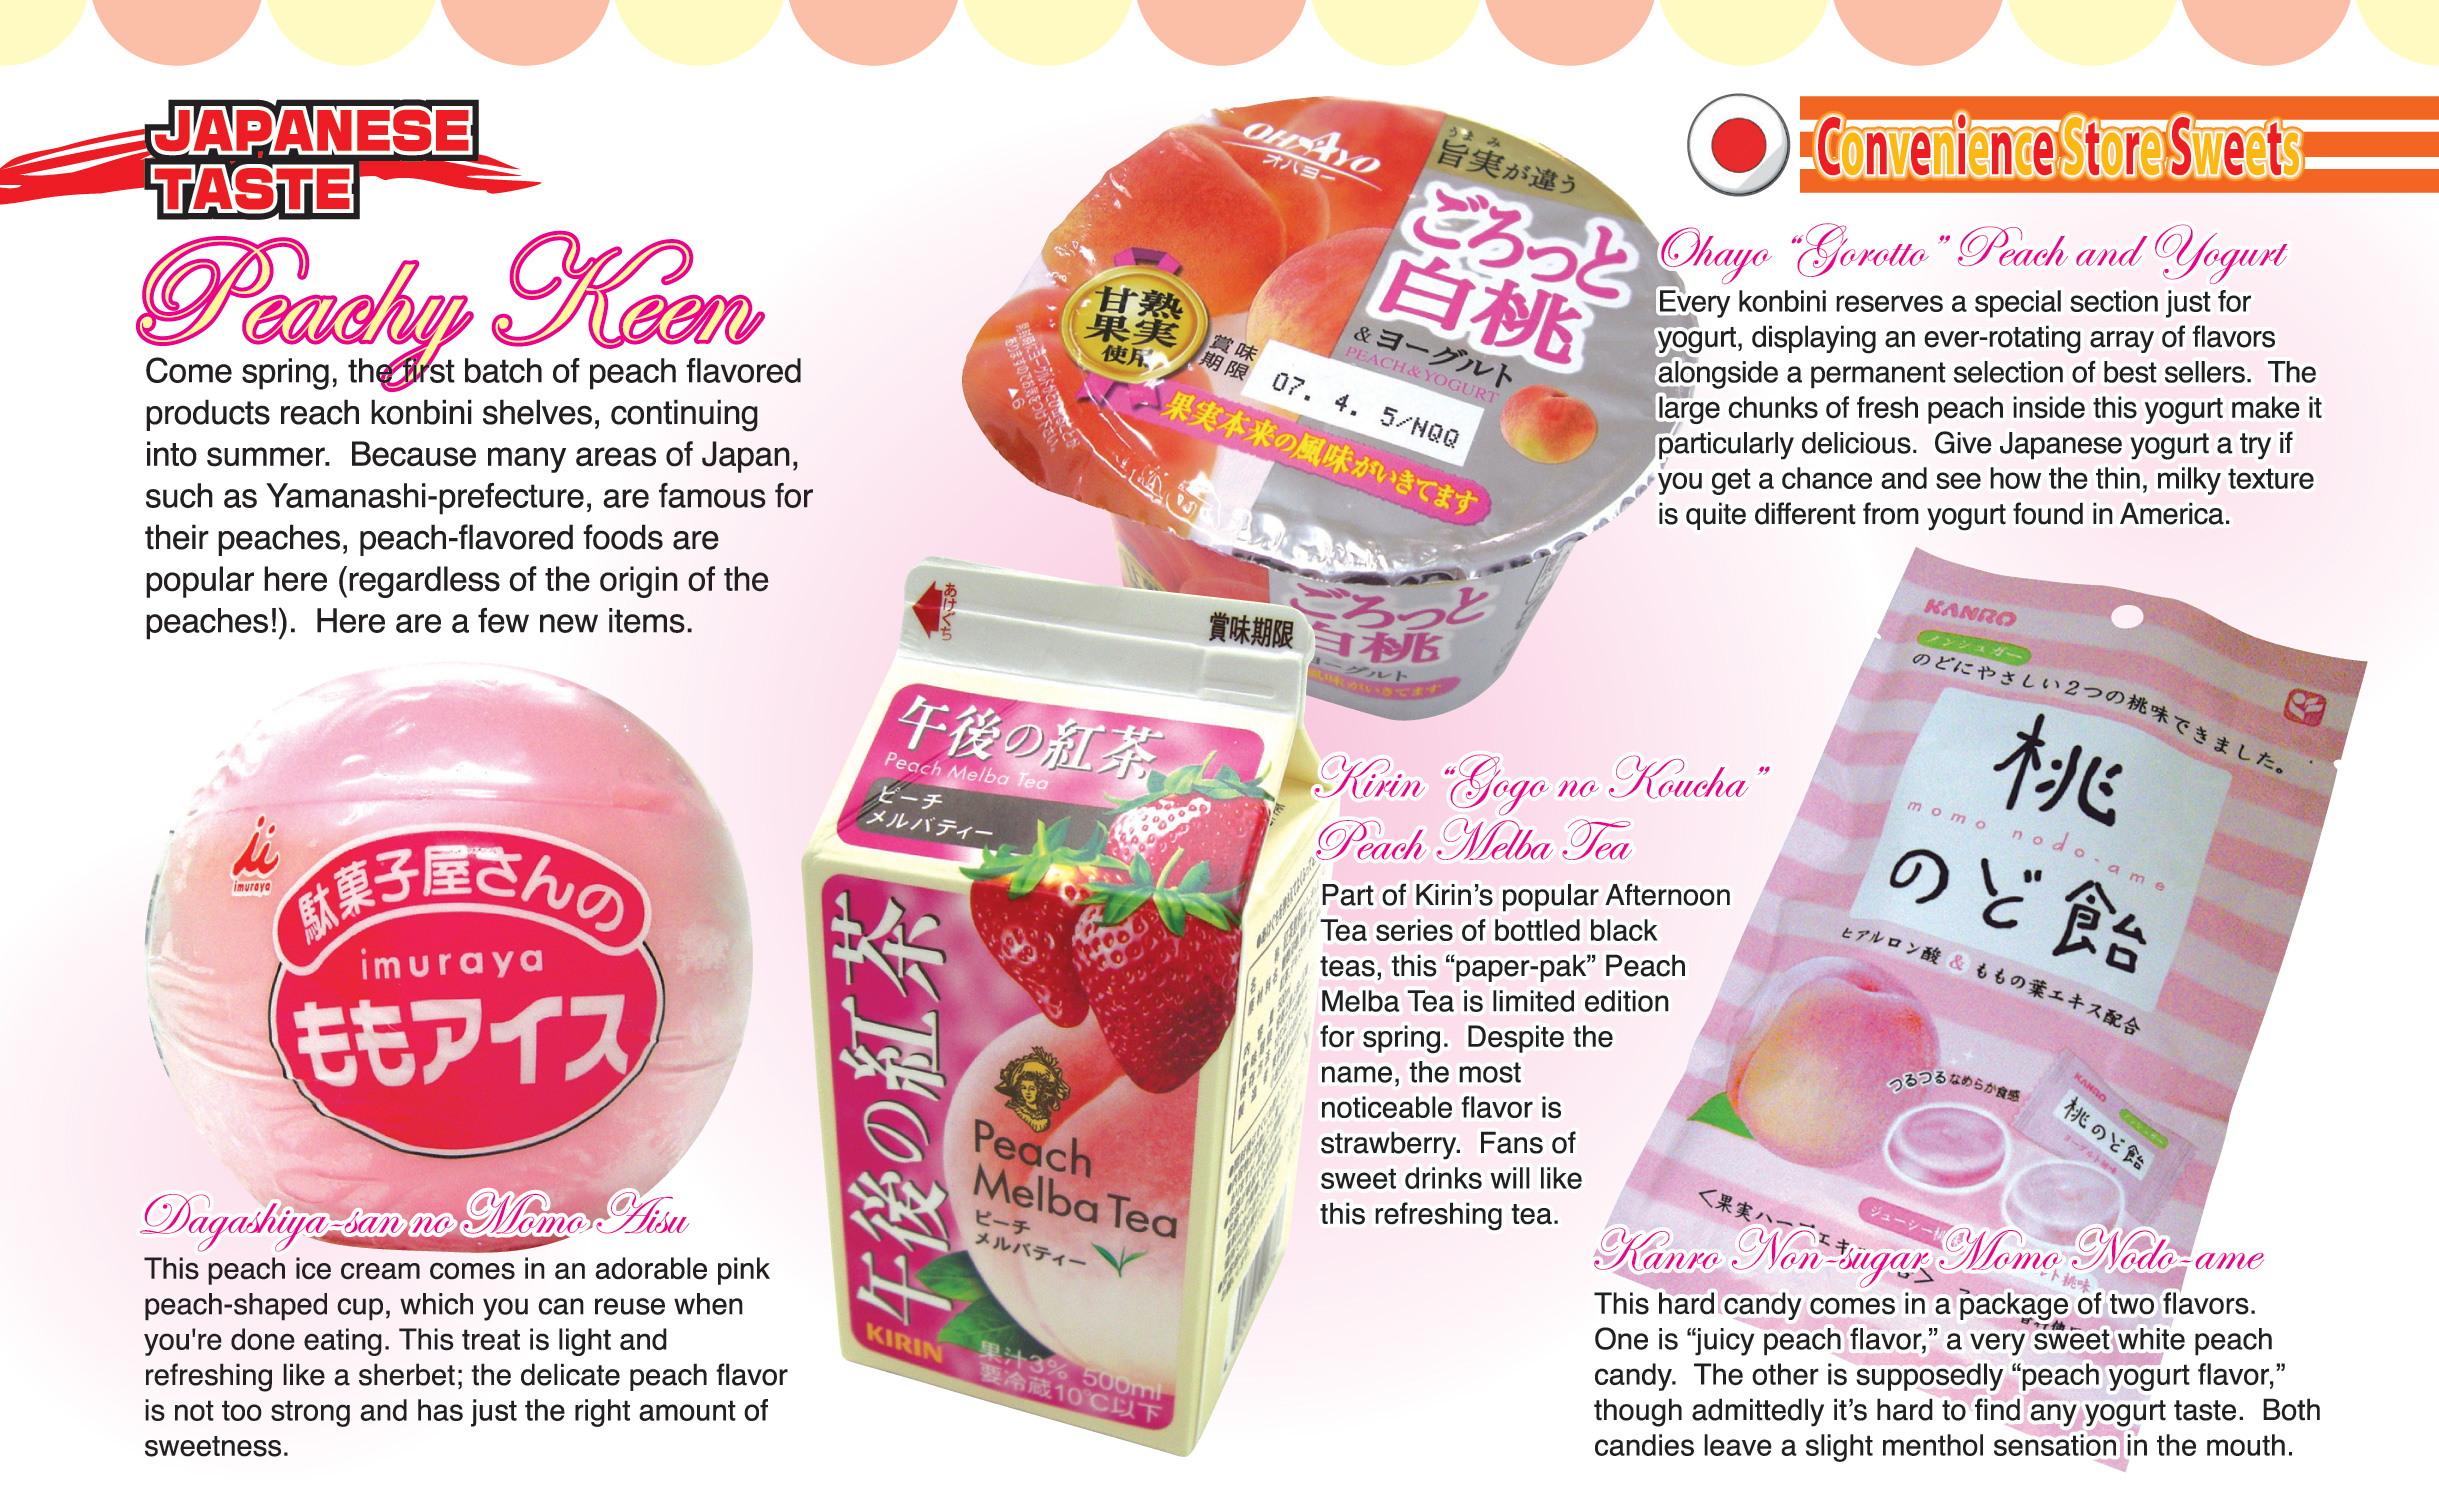 CONVENIENCE STORE SWEETS: Peachy Keen